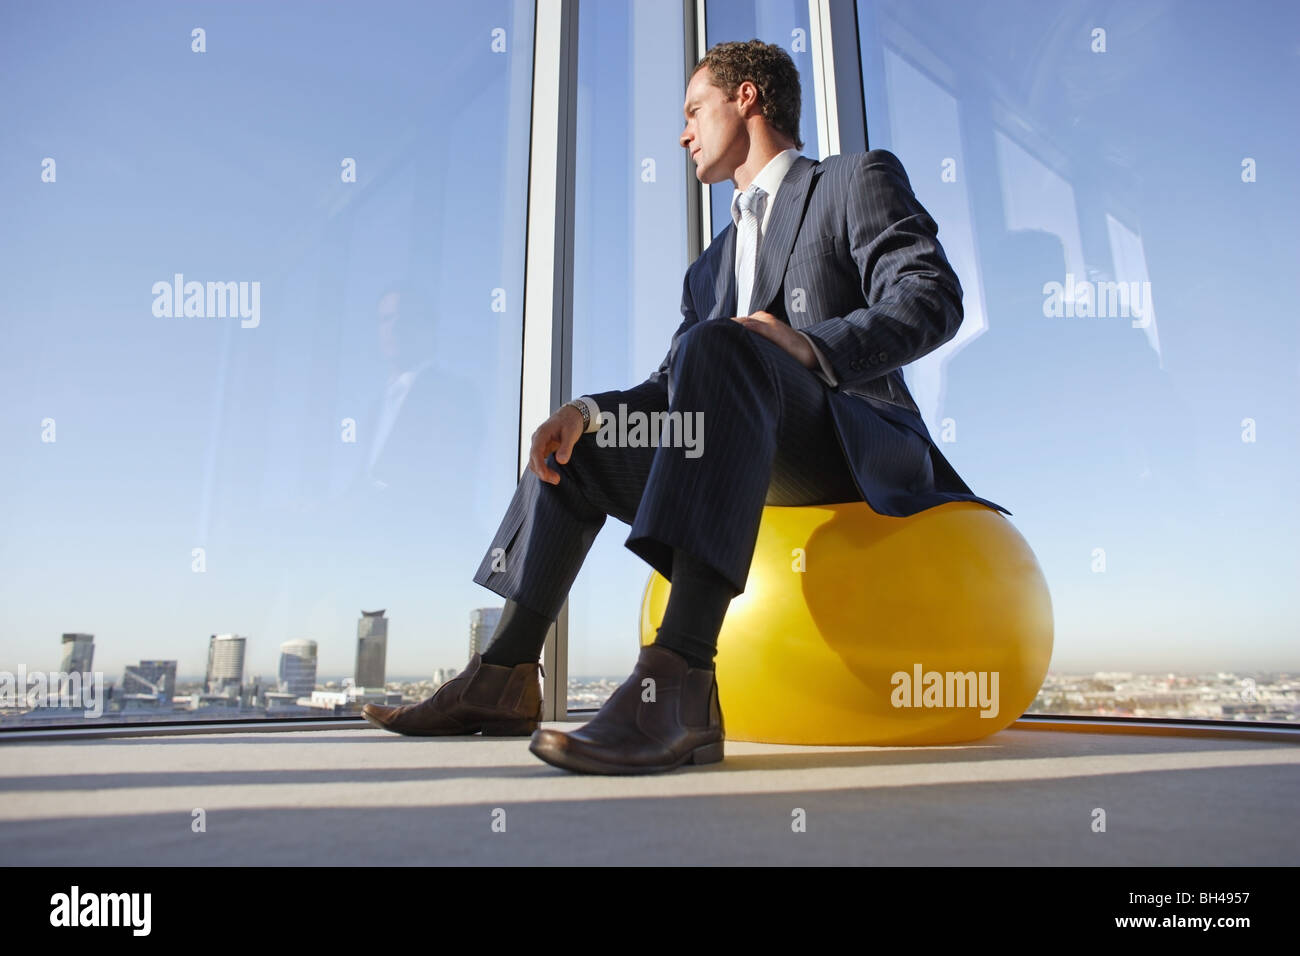 A businessman sitting on a swiss ball in the corner of an office looking out of the window across the skyscrapers Stock Photo